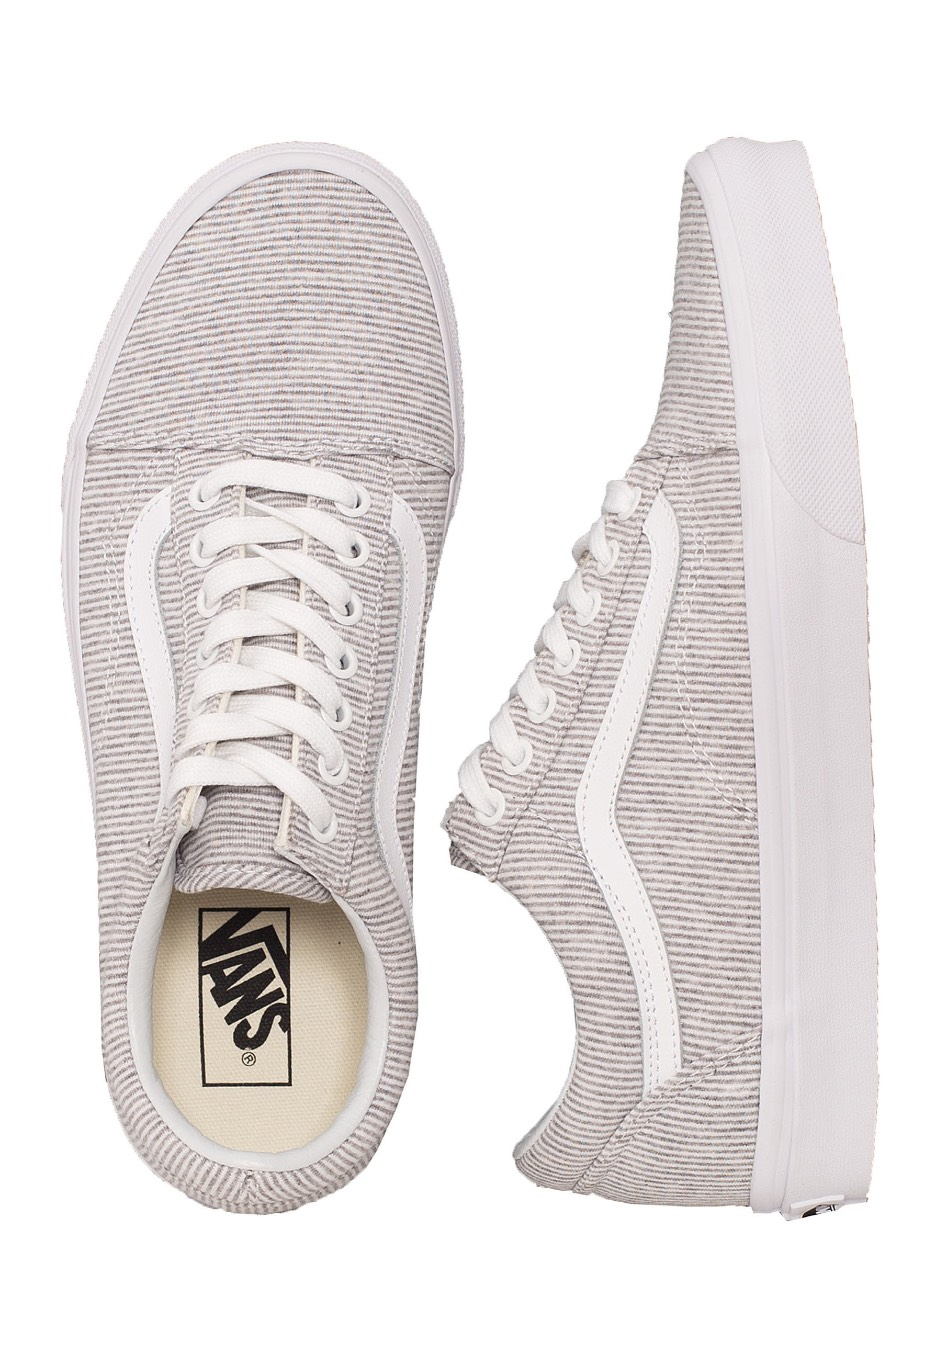 de067277ef Vans - Old Skool Jersey Gray True white - Girl Shoes - Impericon.com US